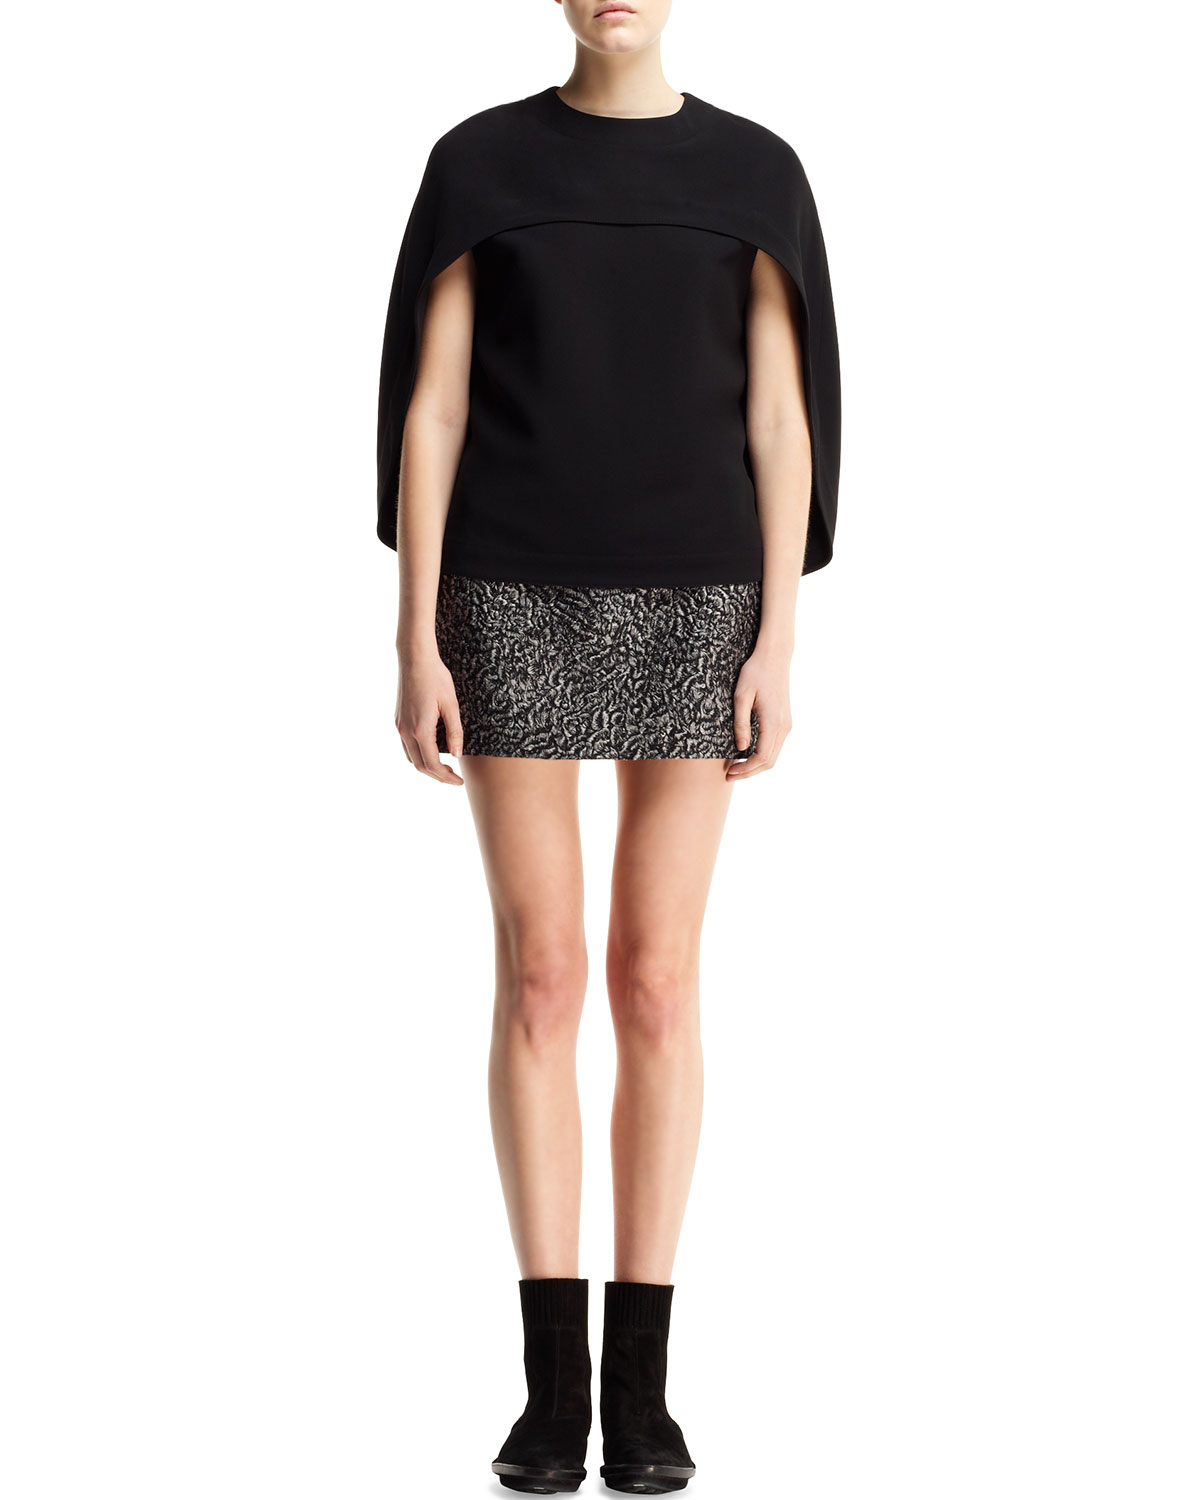 Balenciaga Crewneck Cape-Sleeve Top and Astrakhan-Jacquard Miniskirt